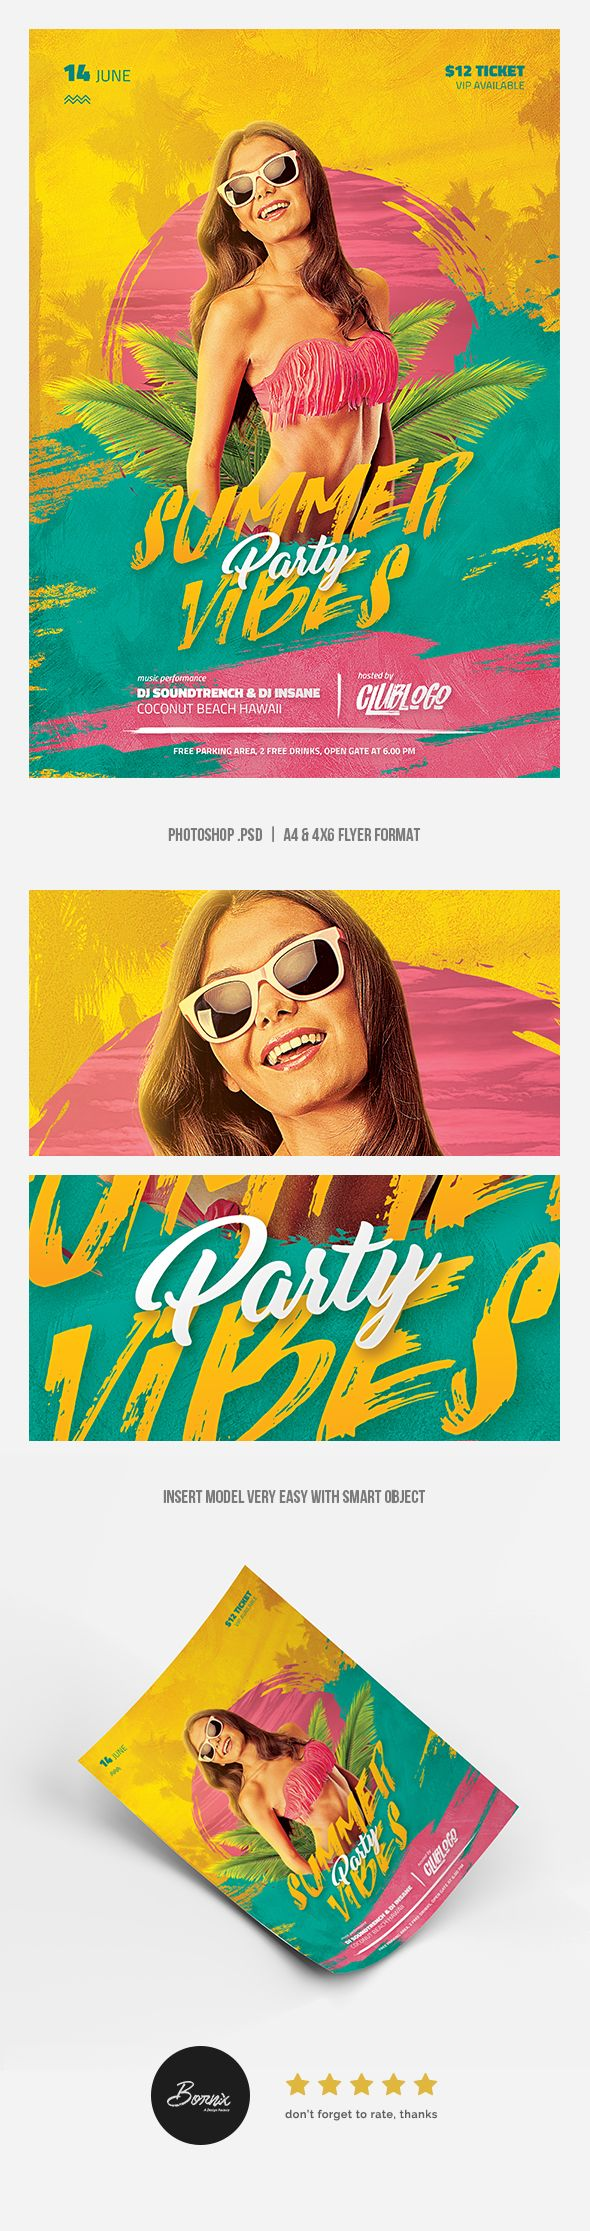 Summer Vibes Party flyer template #graphicriver #flyer #poster #template #design #adobe #photoshop #summer #holidays #party #beach #sunset #bikini #hot #sexy #model #girl #creative #ads #advertisements #advertising #event #promotion